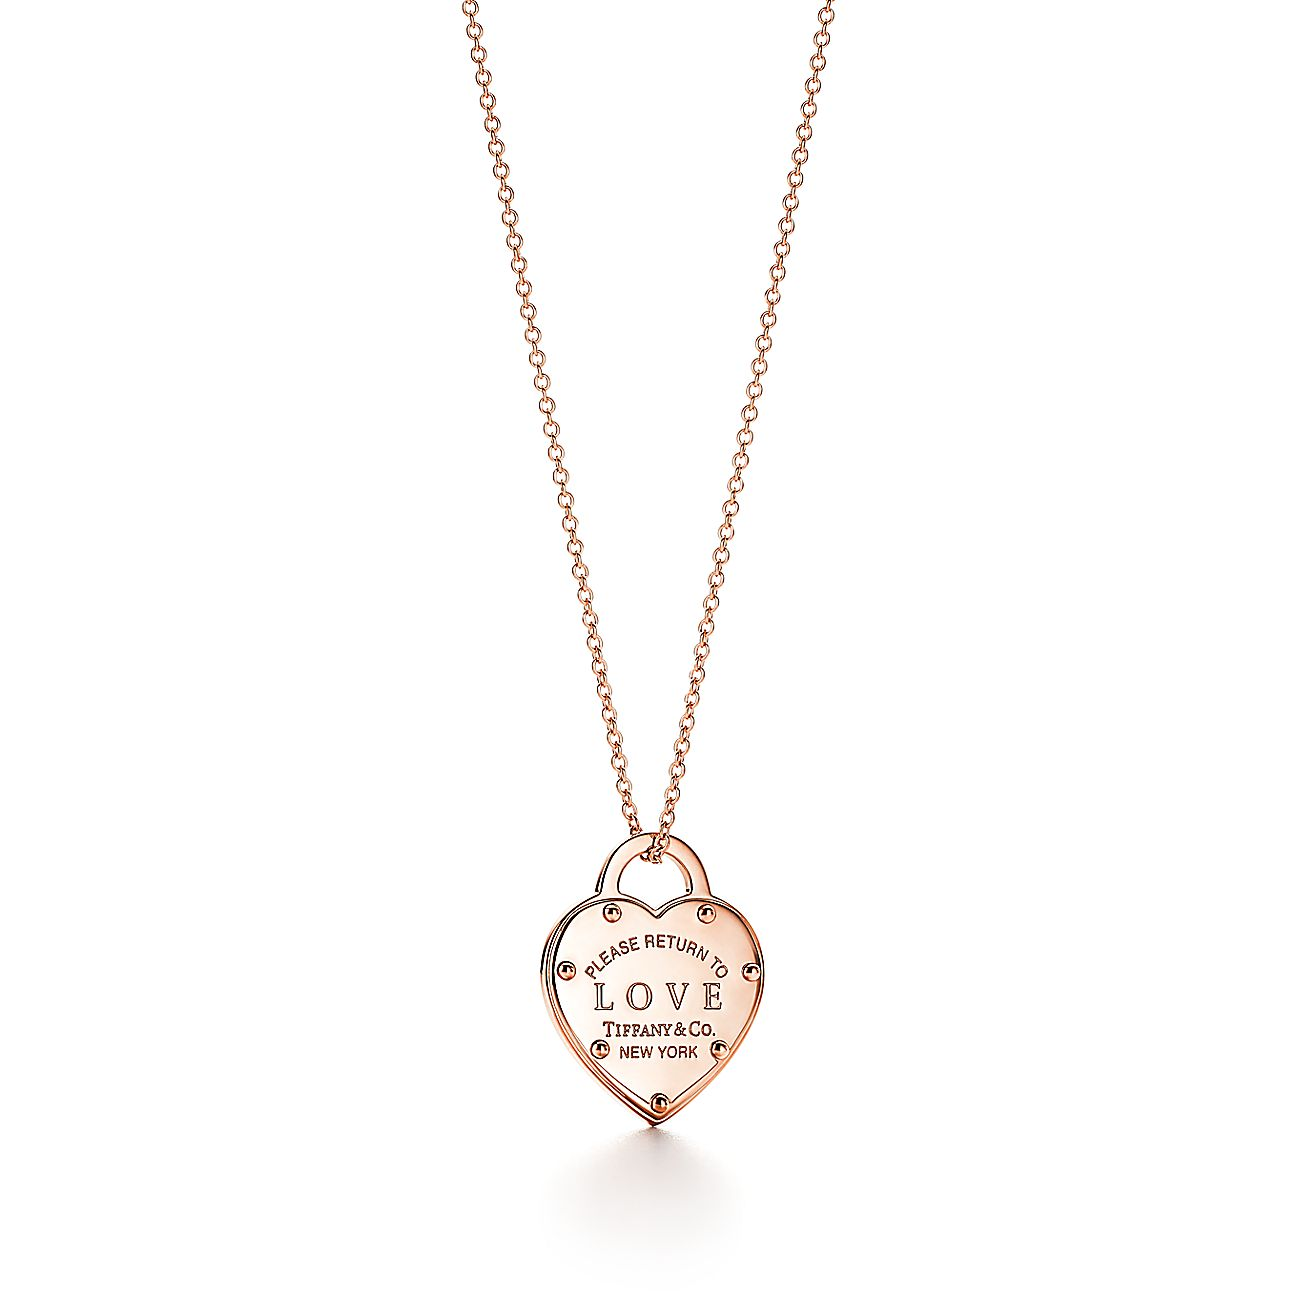 Return To Tiffany 174 Love Pendant In 18k Rose Gold